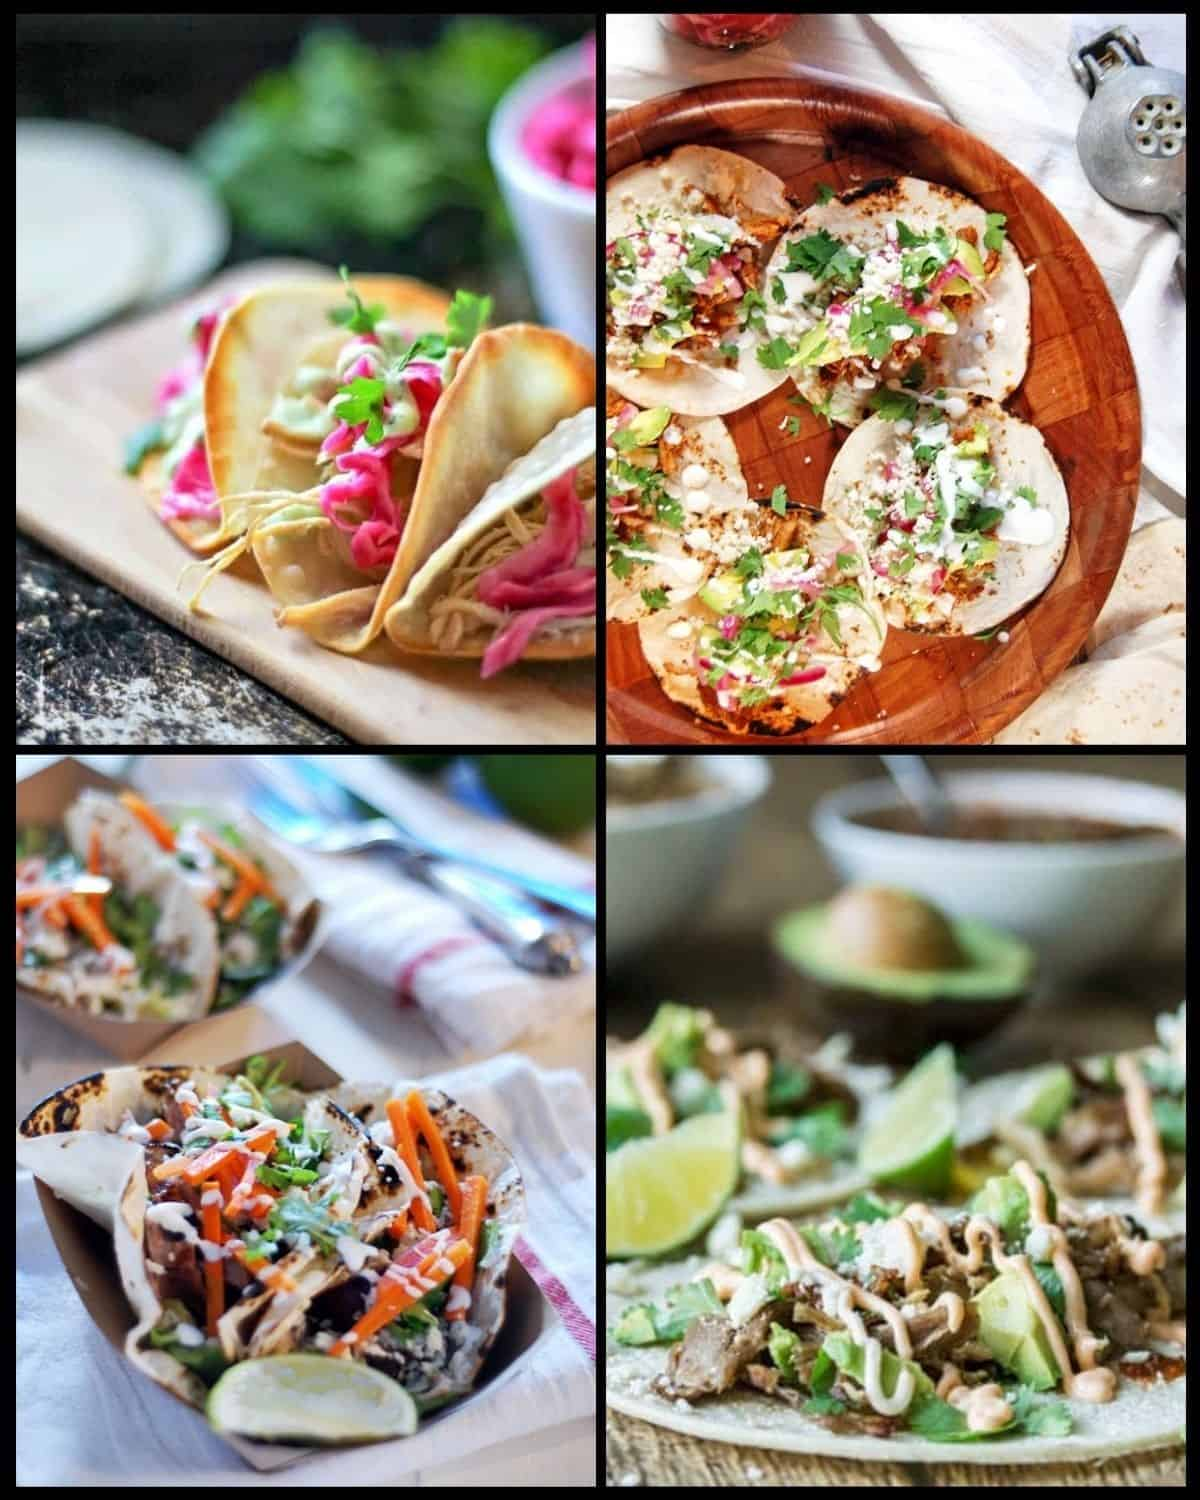 25 Exciting and (Mostly) Healthy Taco Recipes - Global influences and a variety of proteins make this a unique and delicious collection!